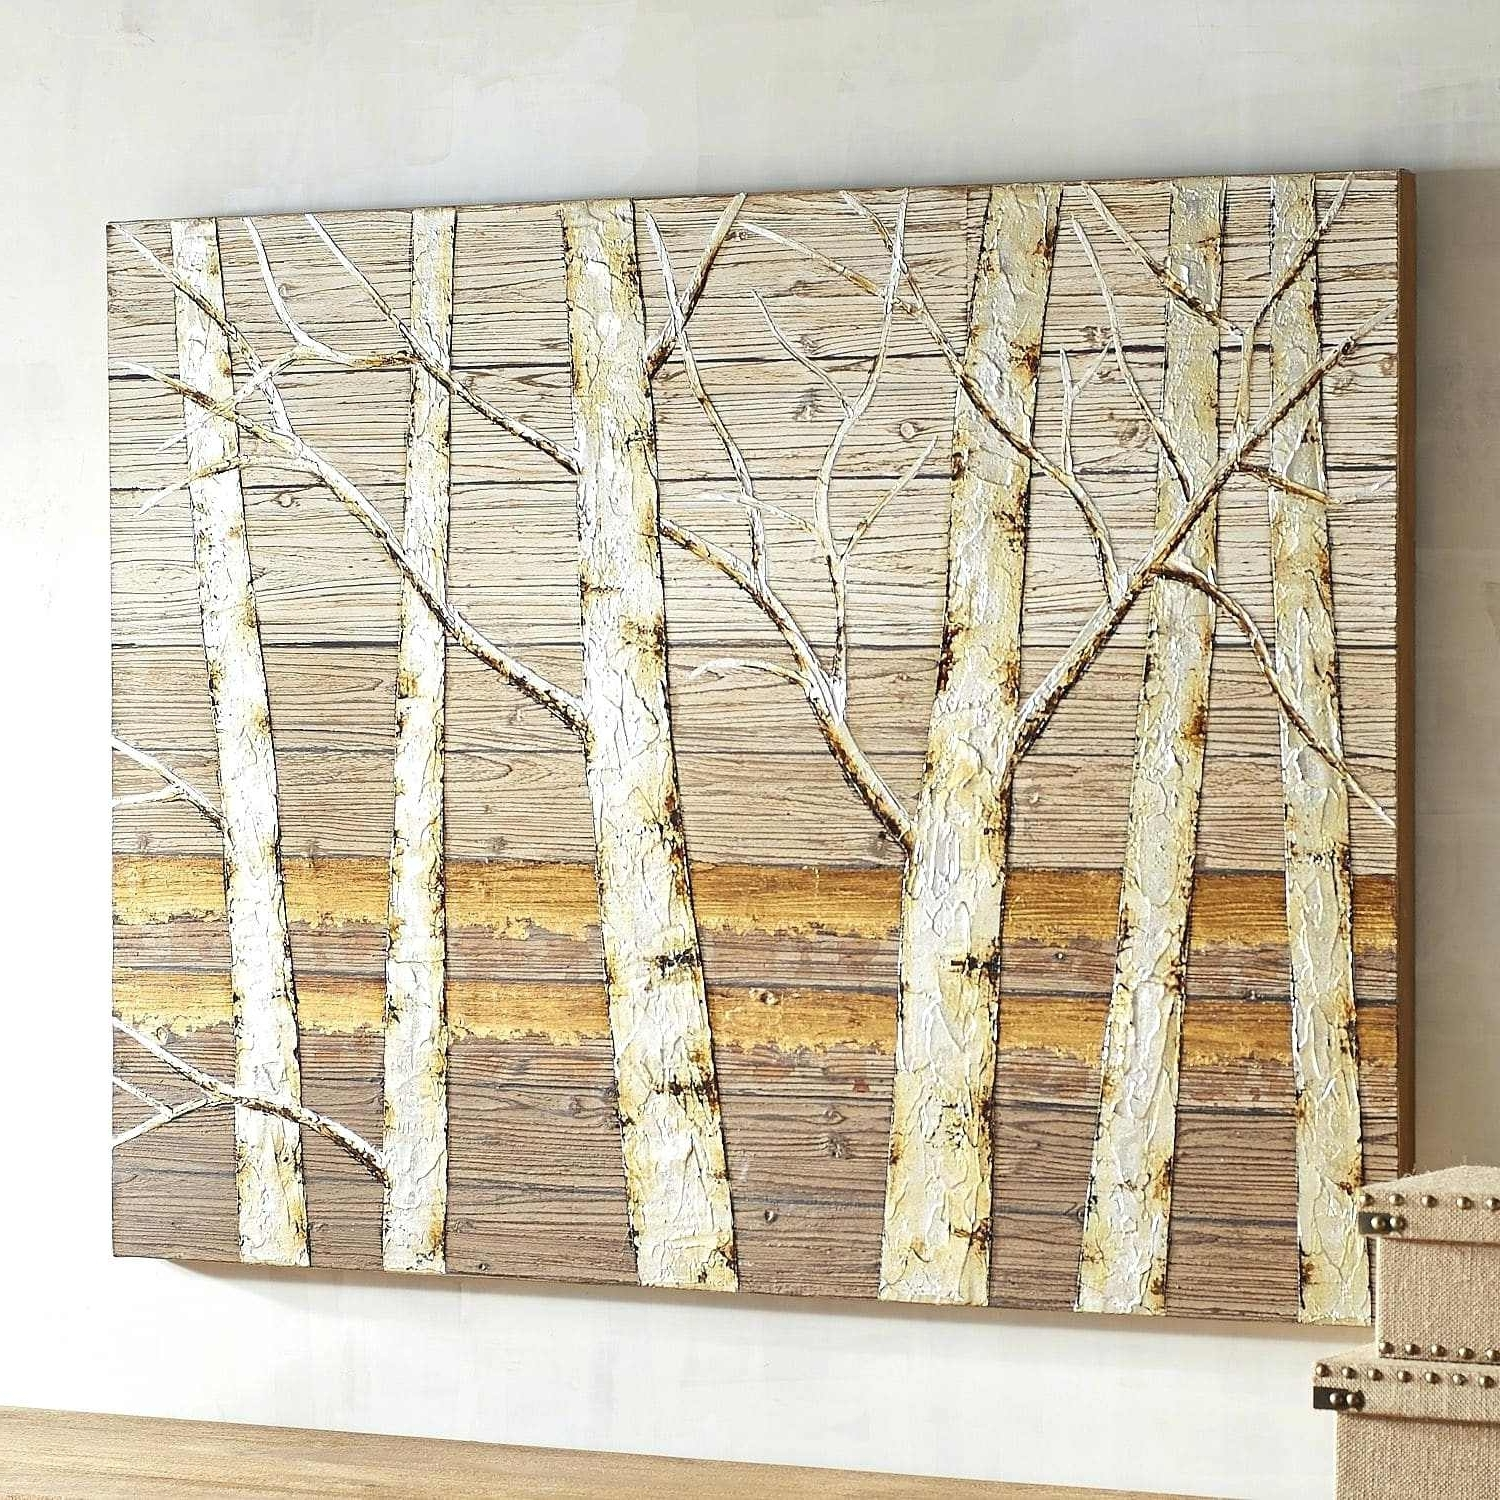 Most Popular Birch Tree Wall Art Pertaining To Birch Wall Art Metallic Birch Trees Wall Art Birch Tree Wall Art (View 5 of 20)